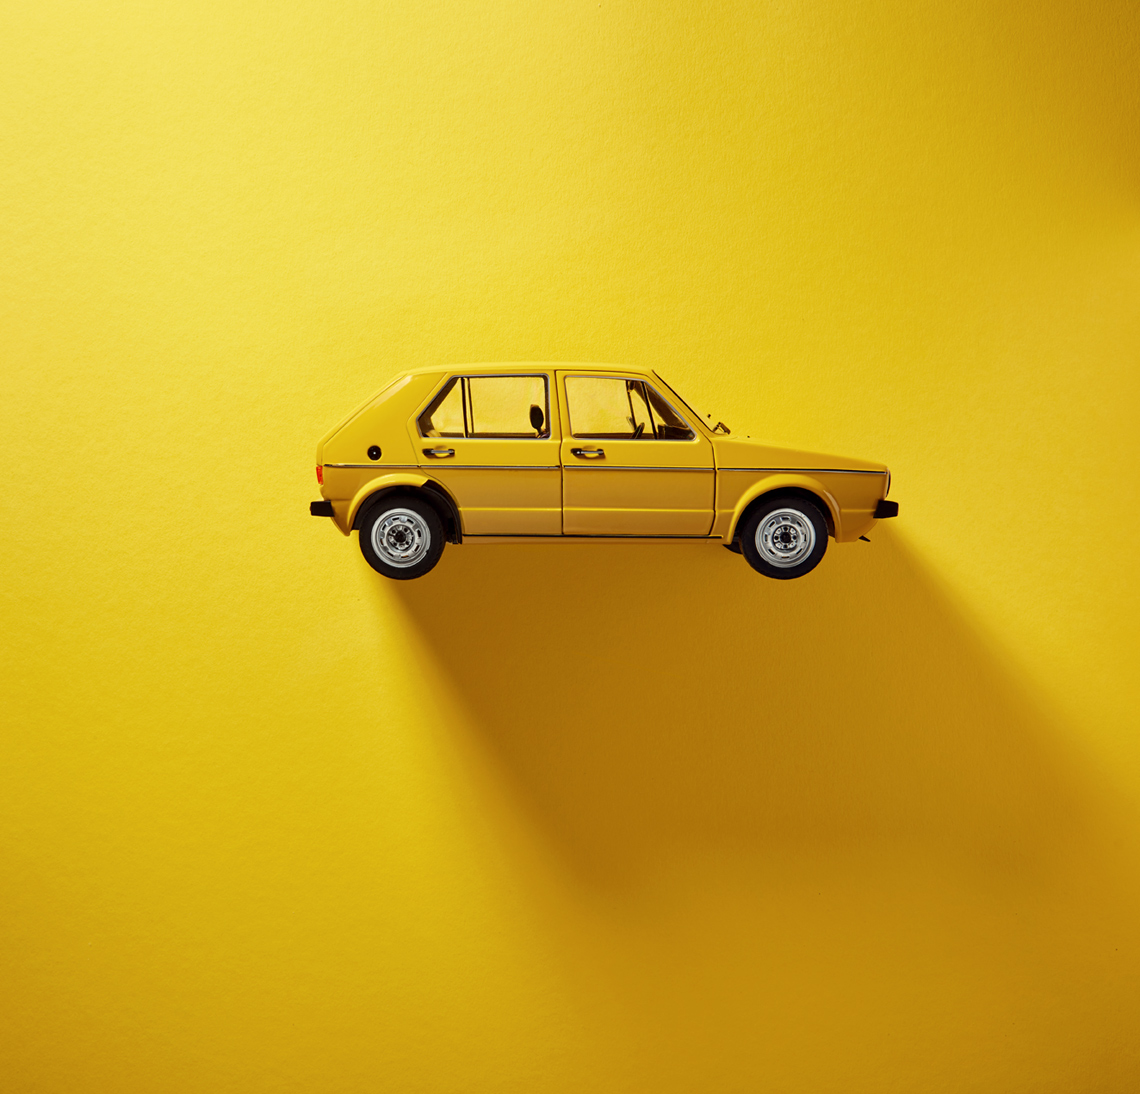 Still Life Photography: vw golf mark1